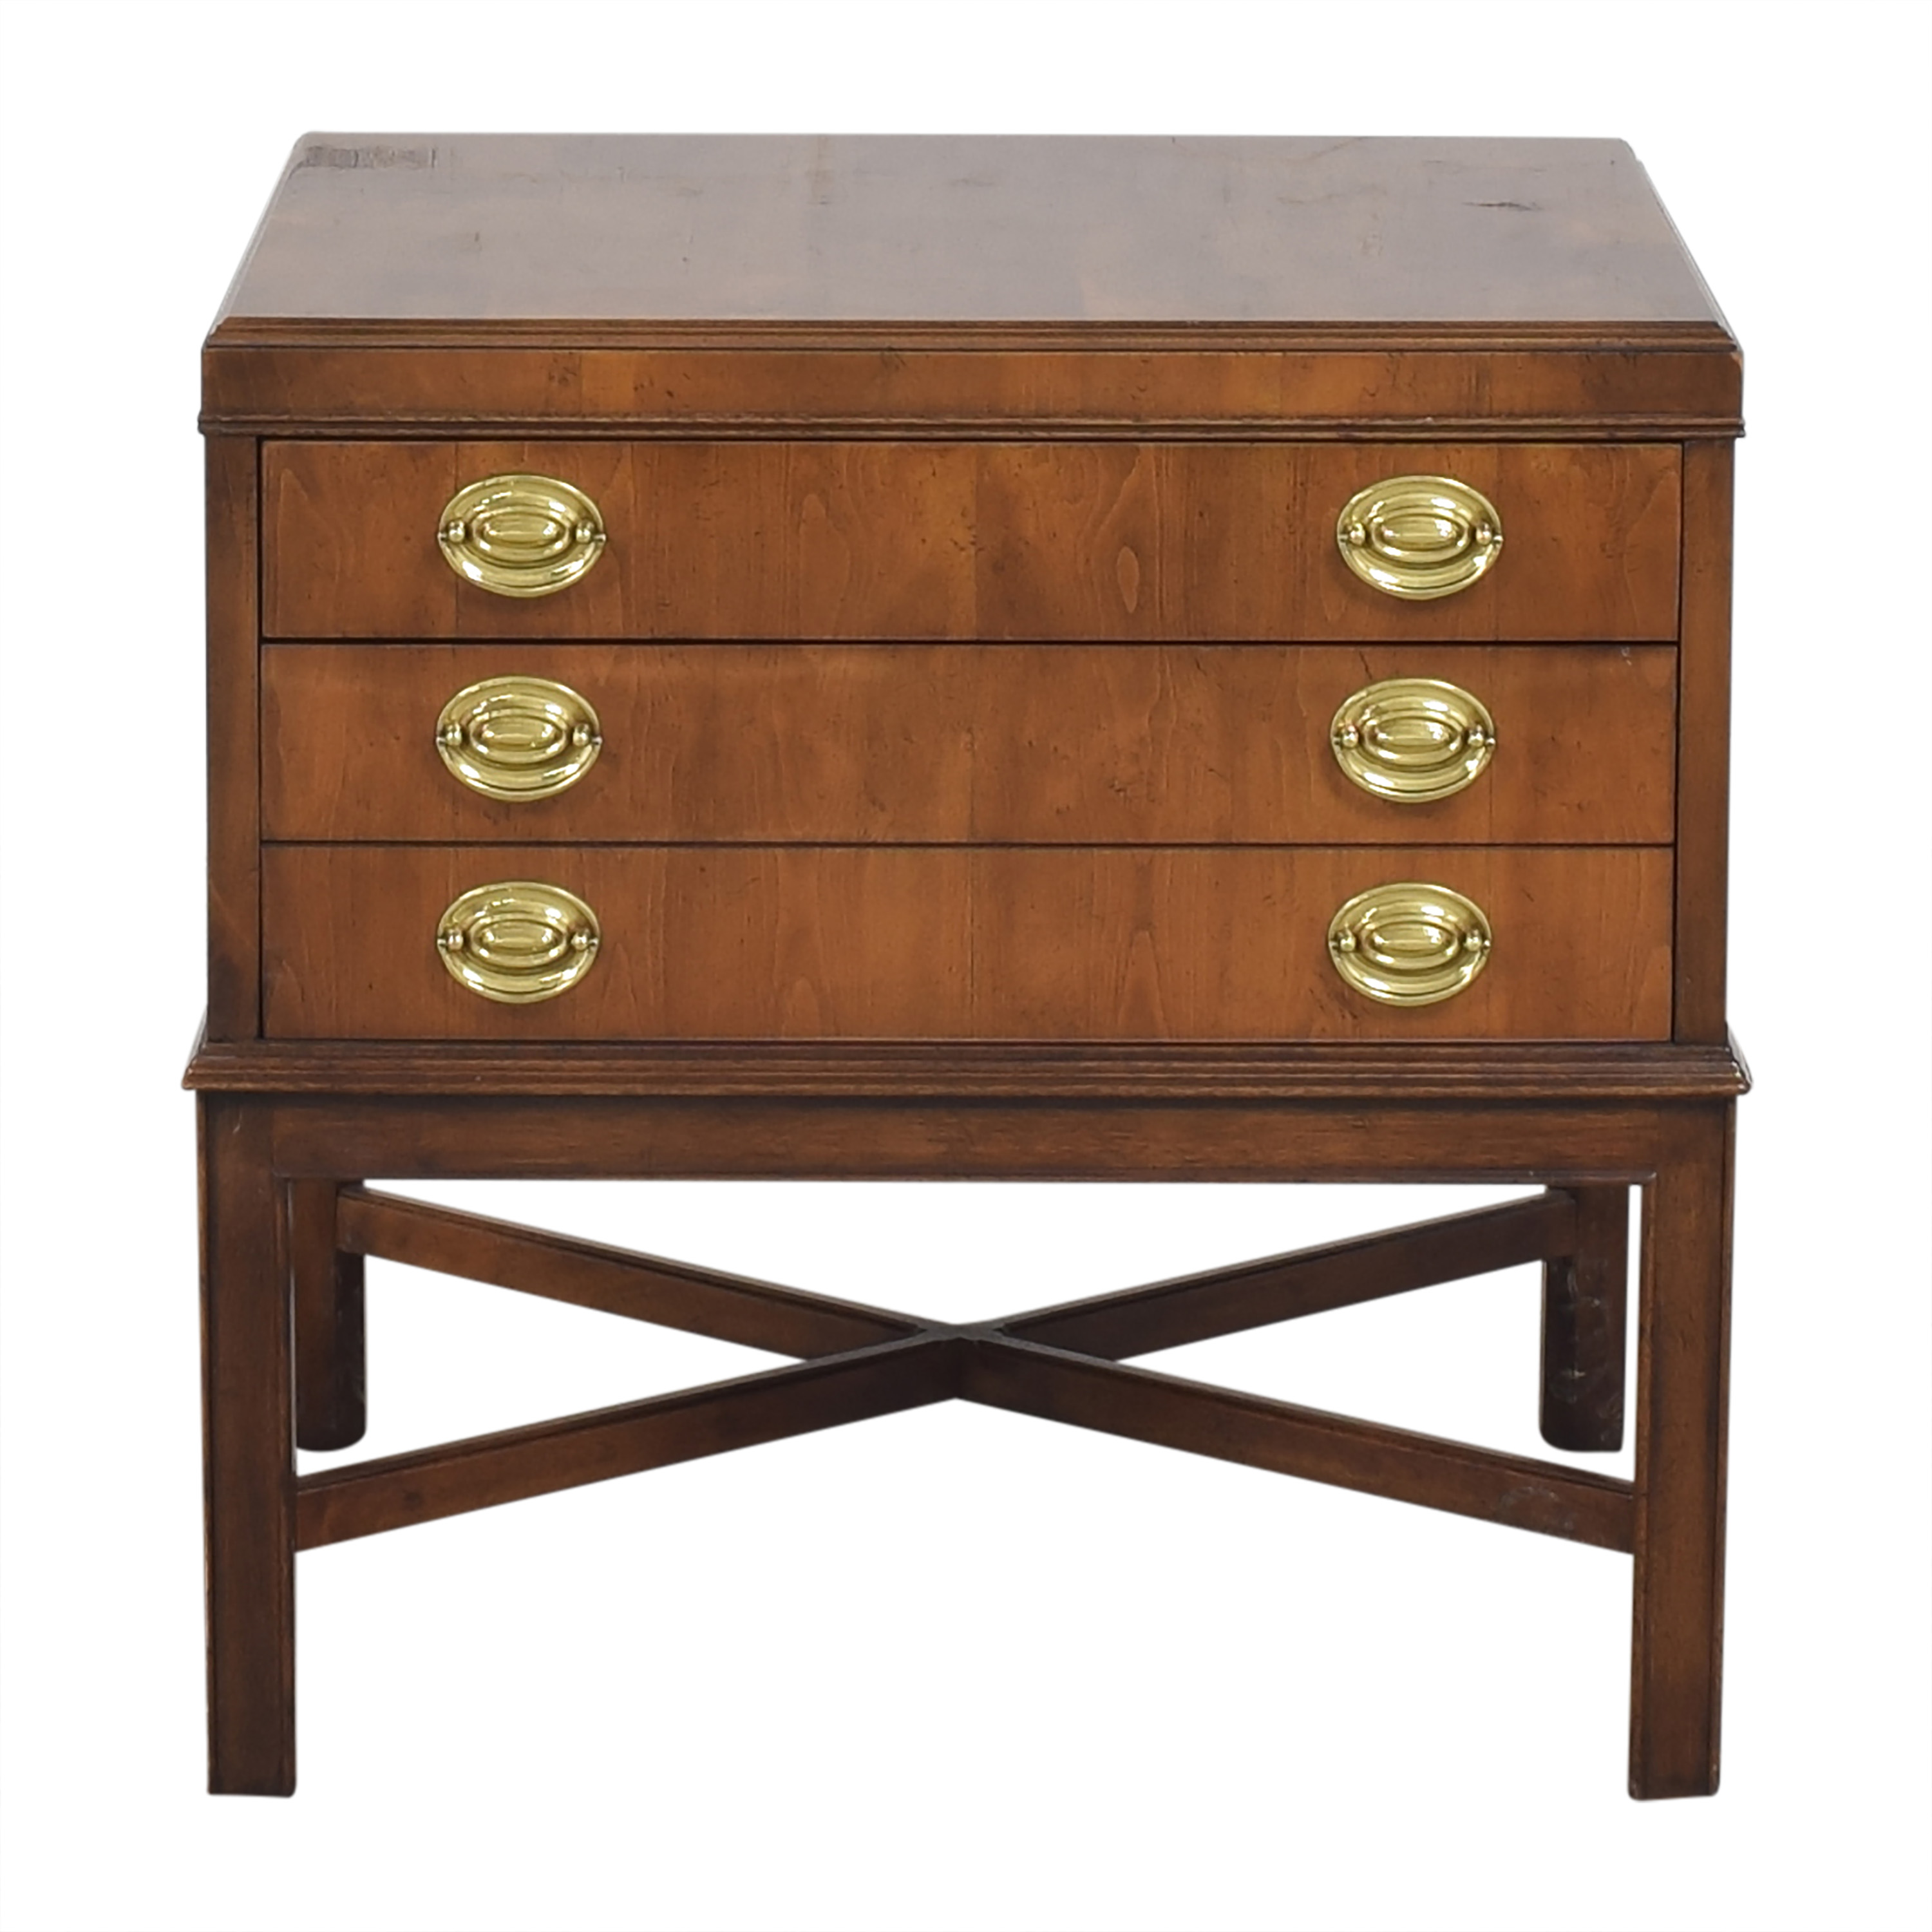 Drexel Heritage Drexel Heritage Two Drawer End Table nyc